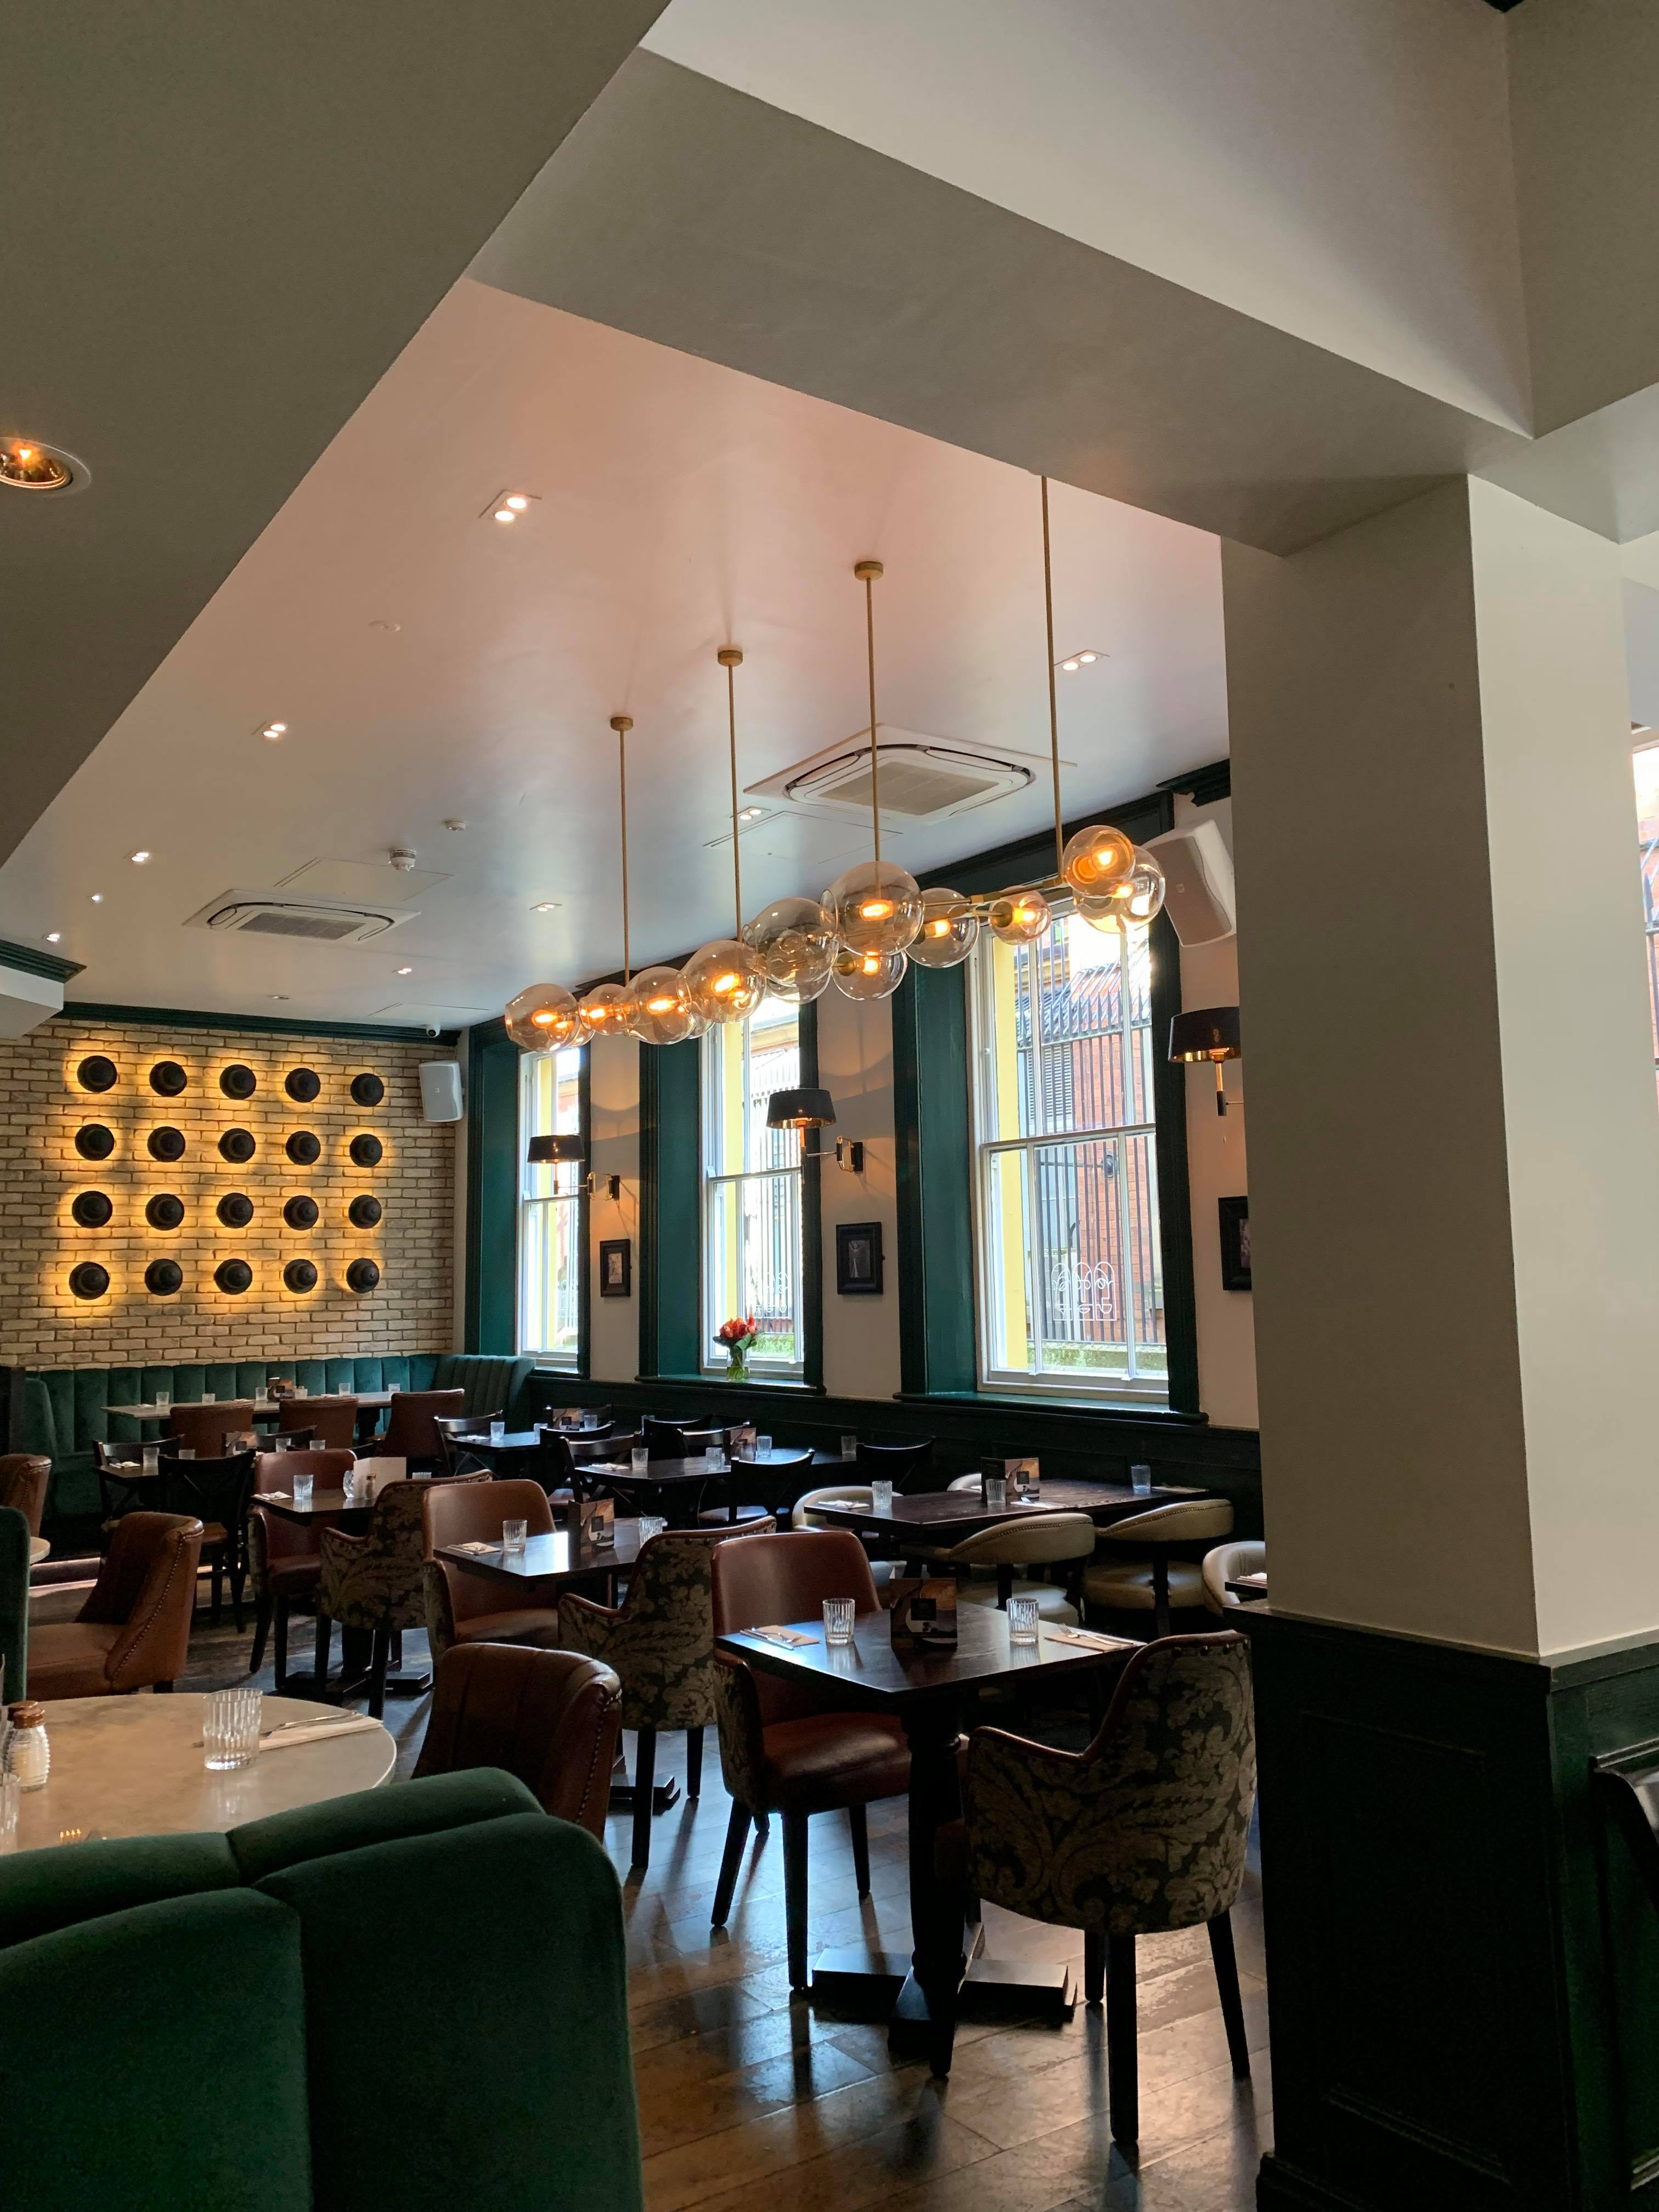 Monday Funday at Castle St Townhouse – My Foodie Journey